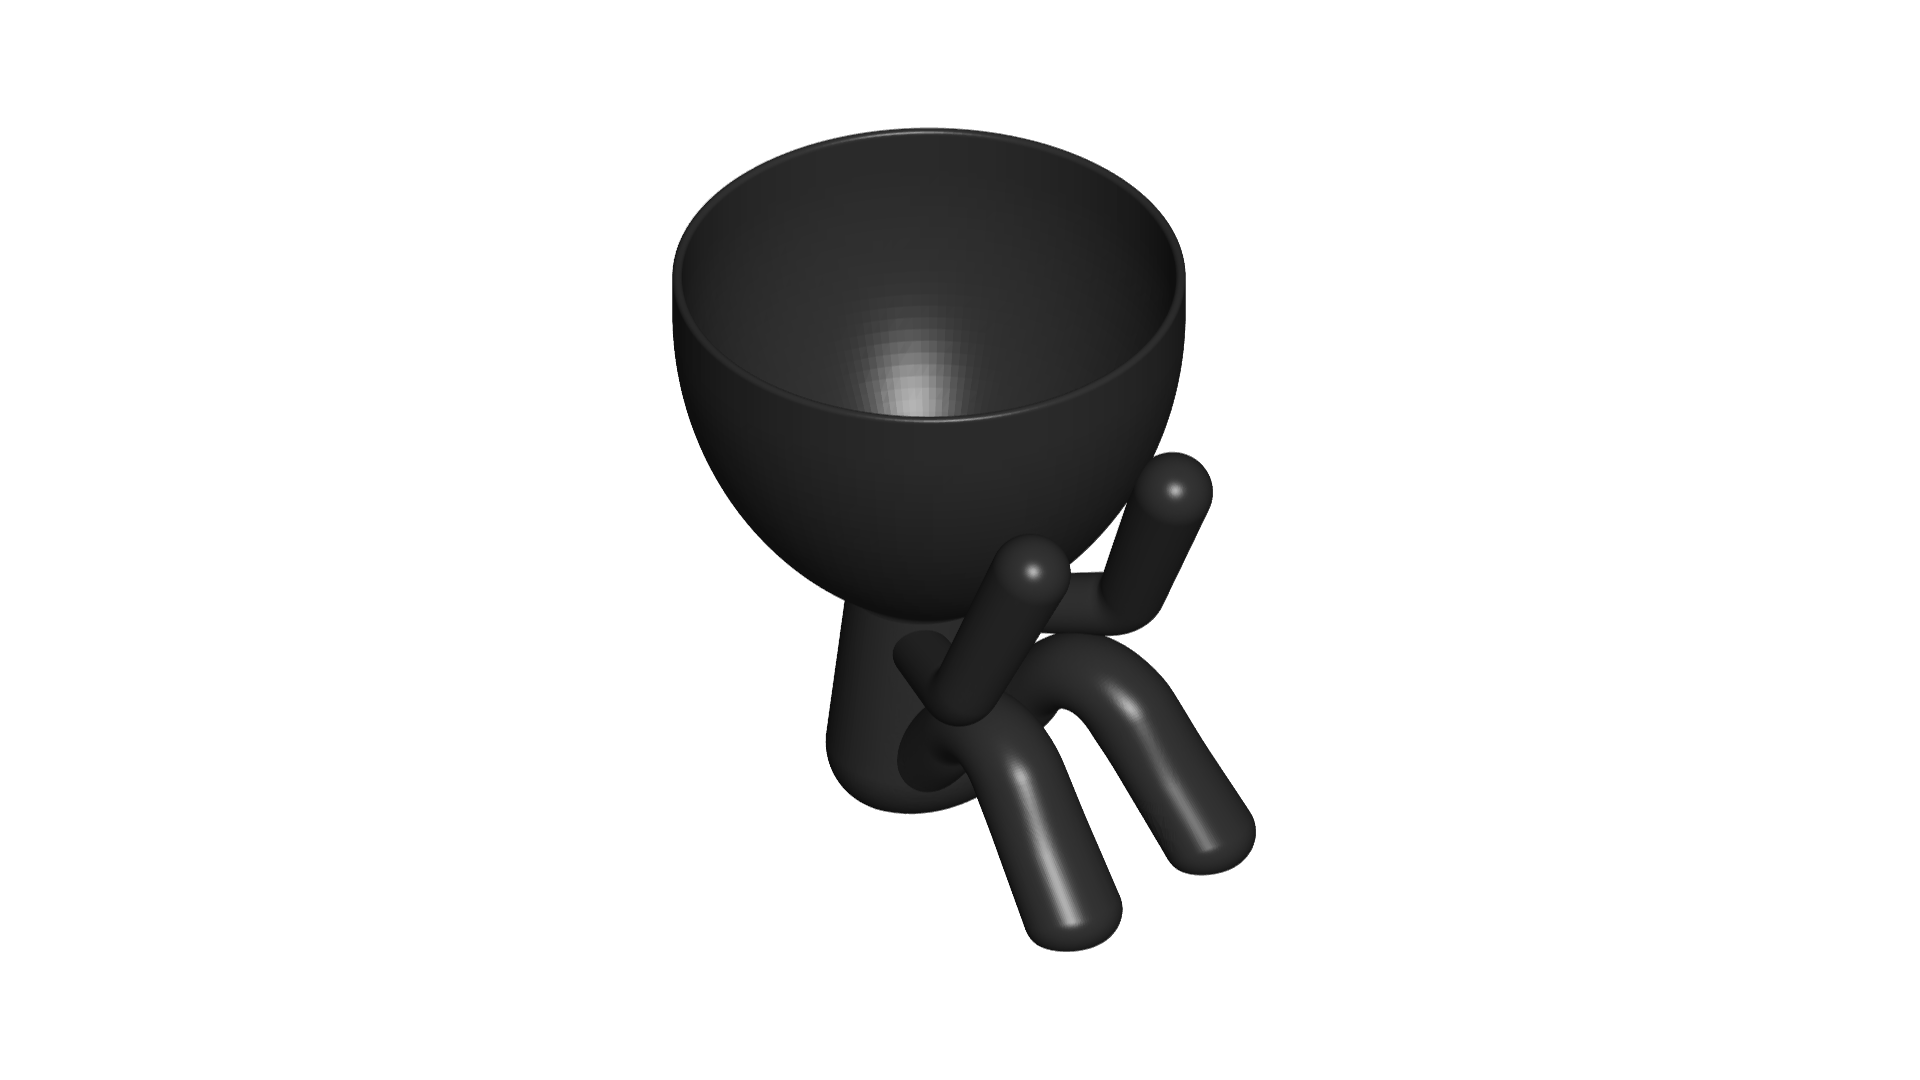 1_negro_2.png Télécharger fichier STL gratuit POT GLASS ROBERT SABIOS NO VE - LE POT GLASS ROBERT SABIOS NE VOIT PAS • Design à imprimer en 3D, CREATIONSISHI